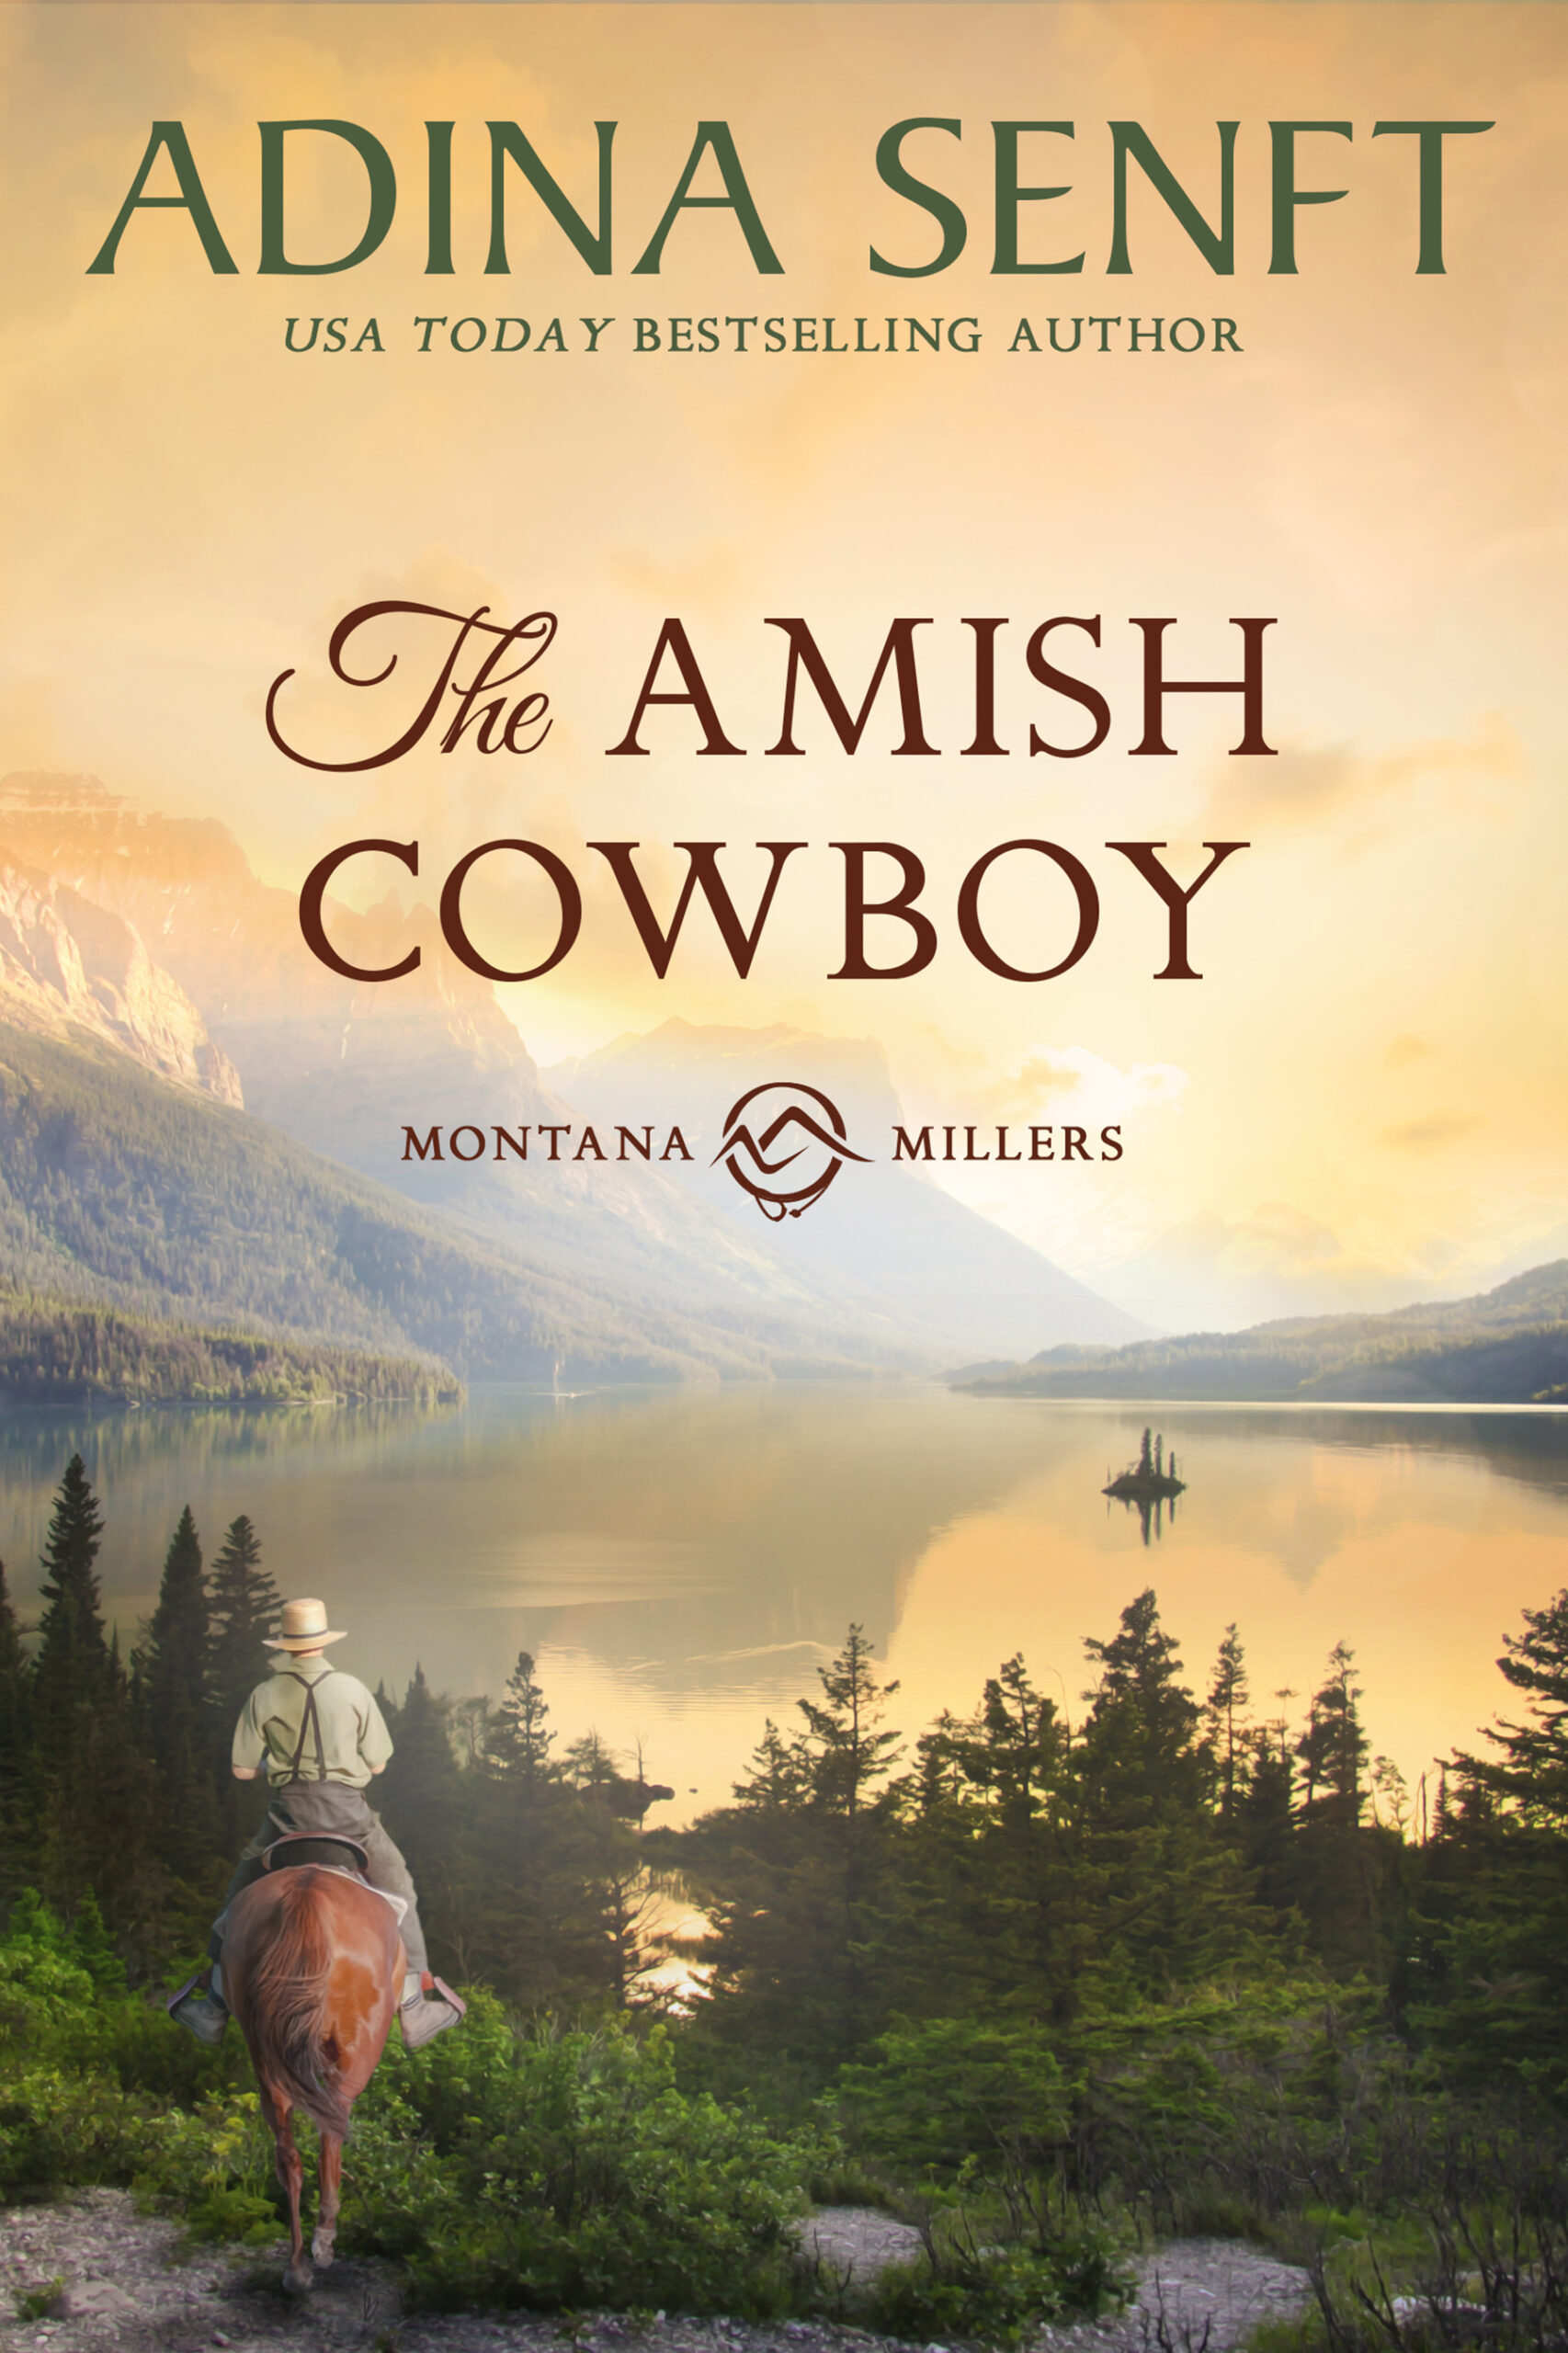 The Amish Cowboy by Adina Senft, Montana Millers book 1